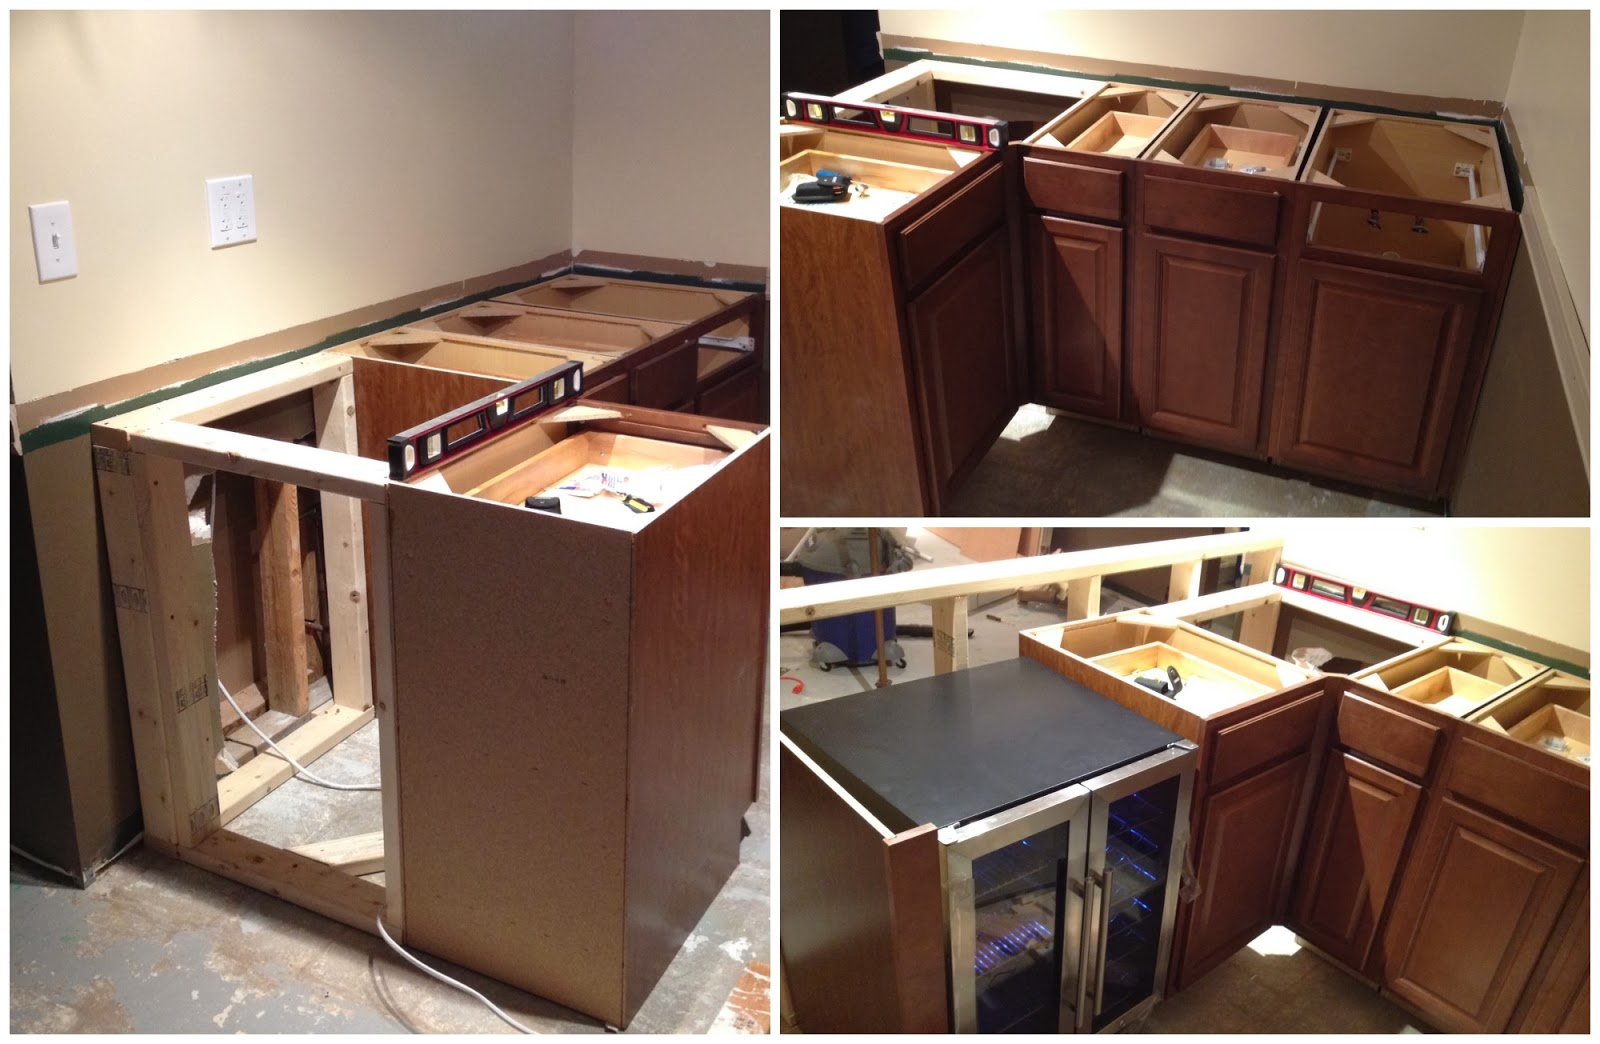 for tops countertop prices depot lowes kitchen cabinets granite fancy bar pricing vanity cabinet diy home wet remarkable ideas